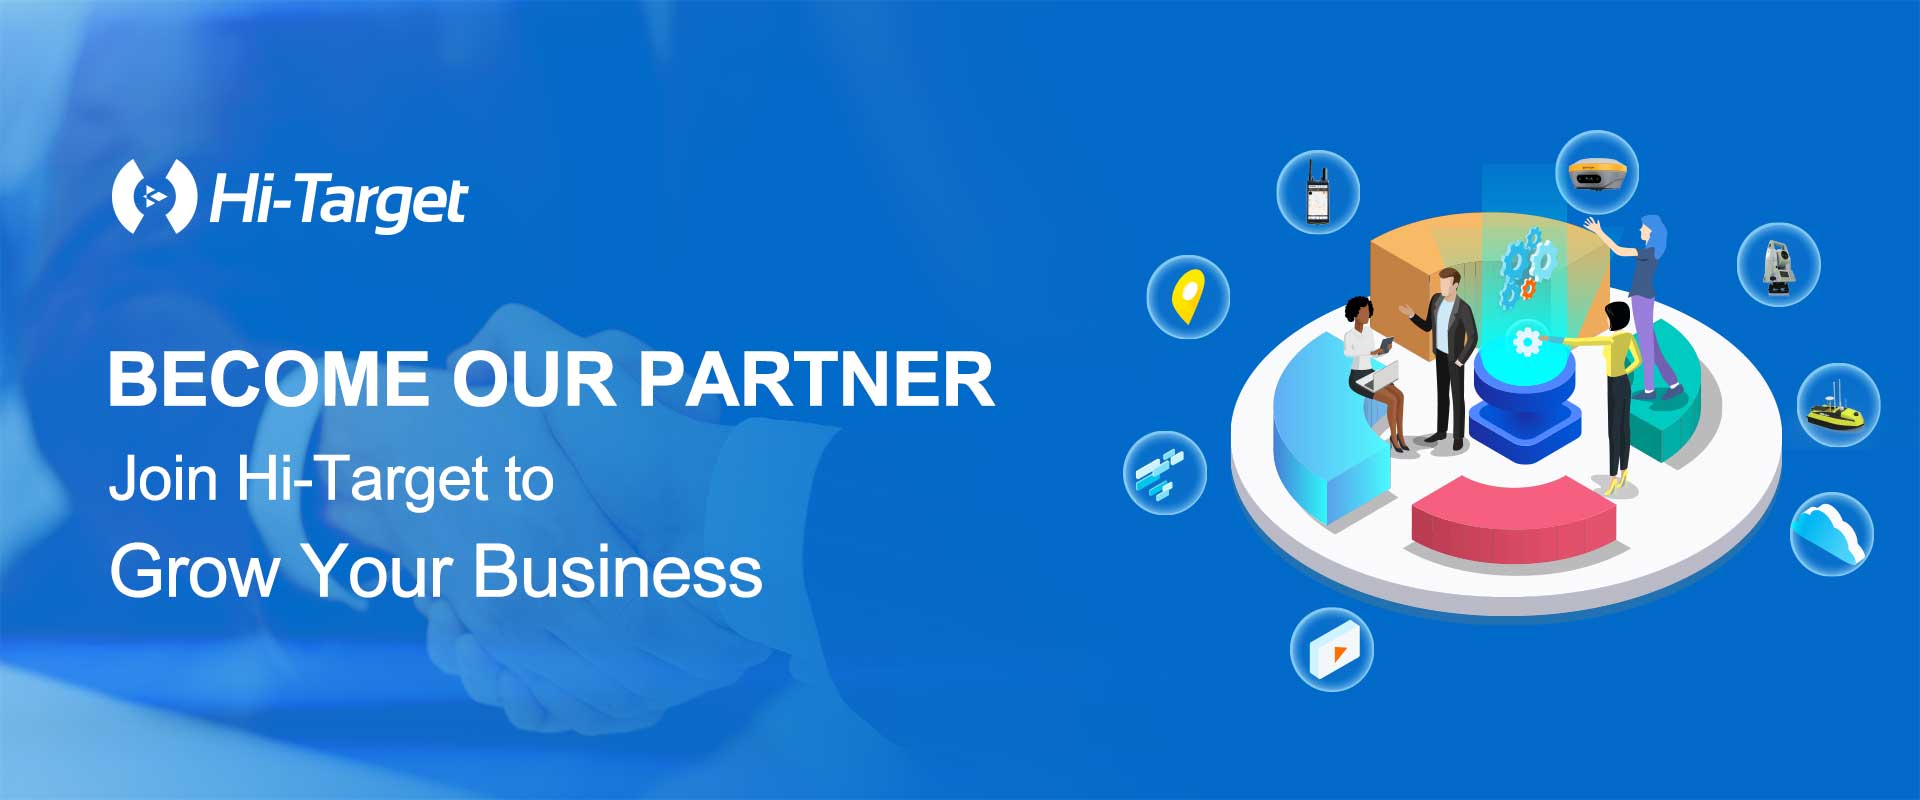 Become Our Partner-Banner